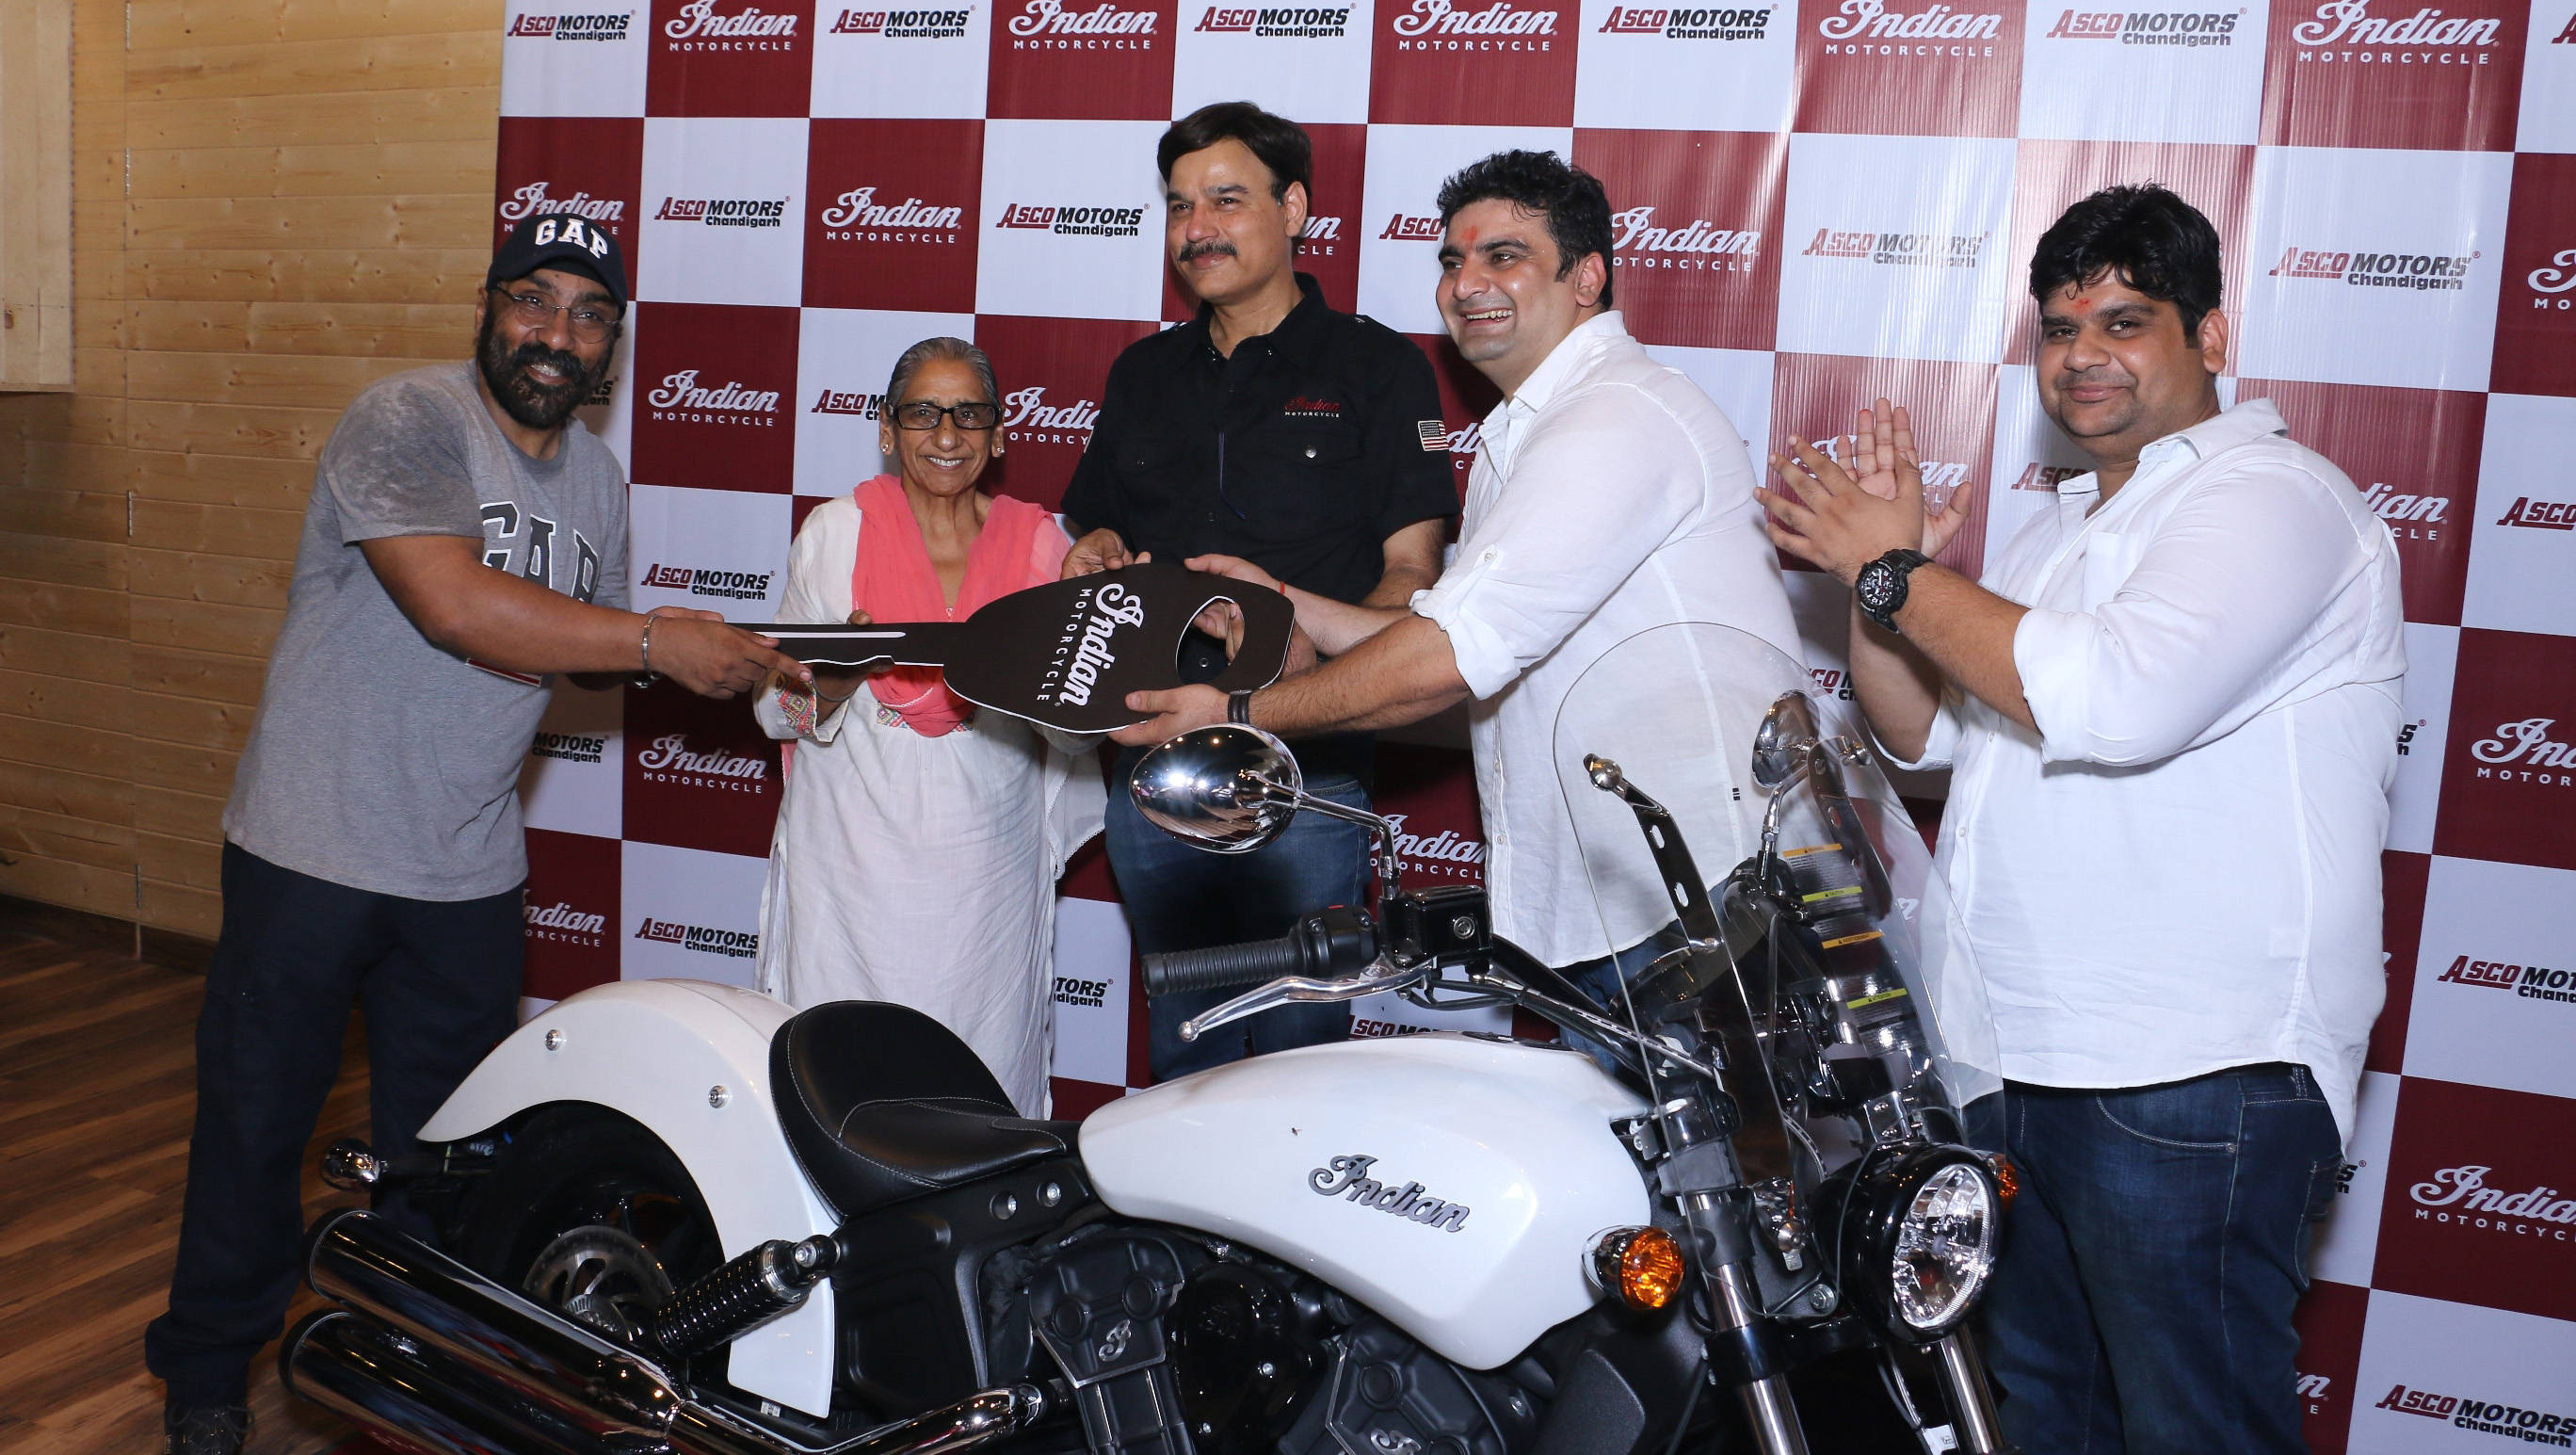 2016 Indian Scout Sixty showcased at Chandigarh dealership in India